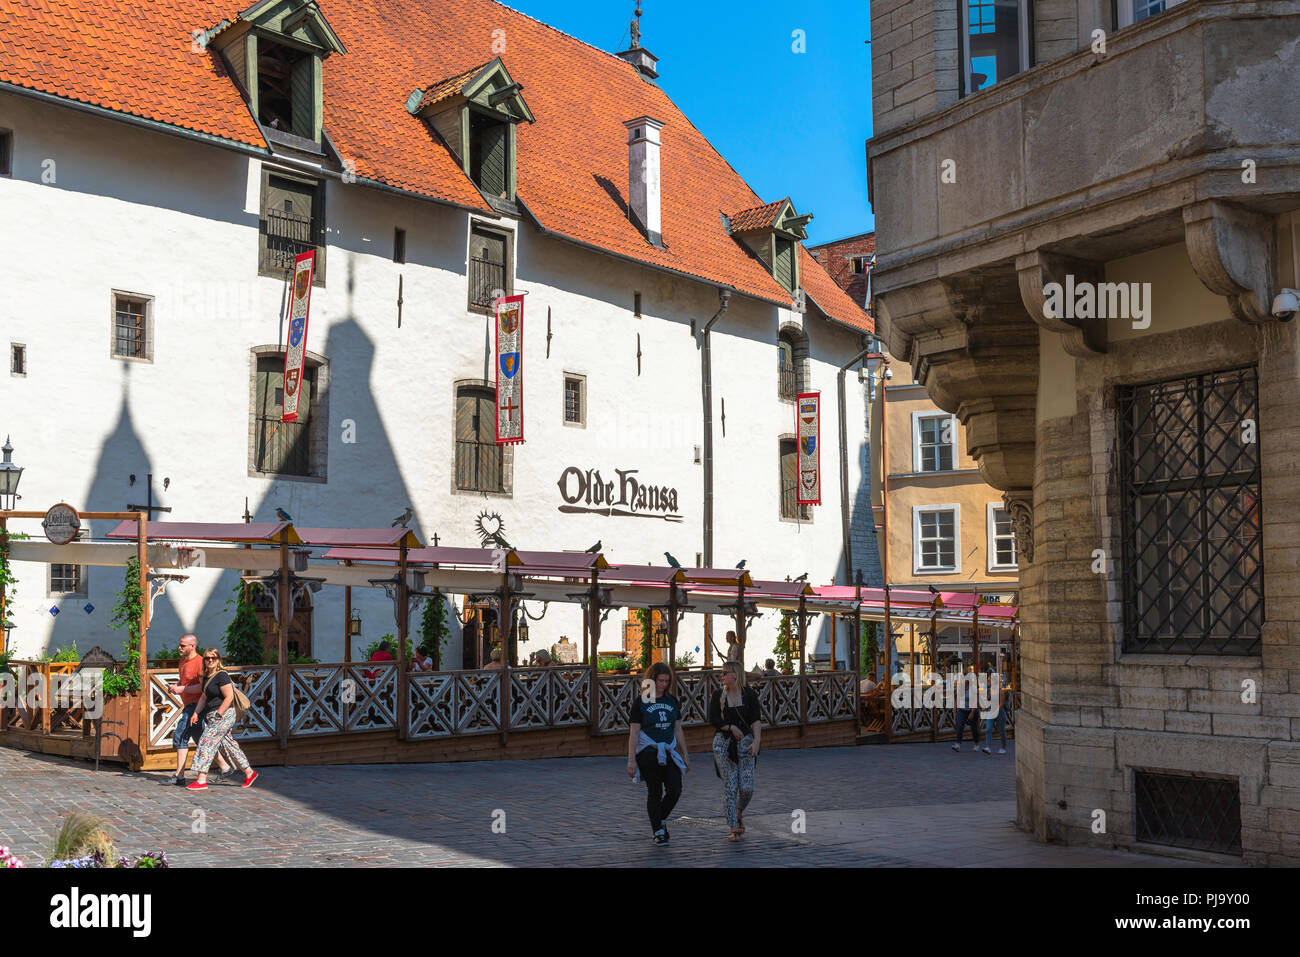 View of the famous Olde Hansa restaurant tavern in the center of the Old Town quarter of Tallinn, Estonia. - Stock Image